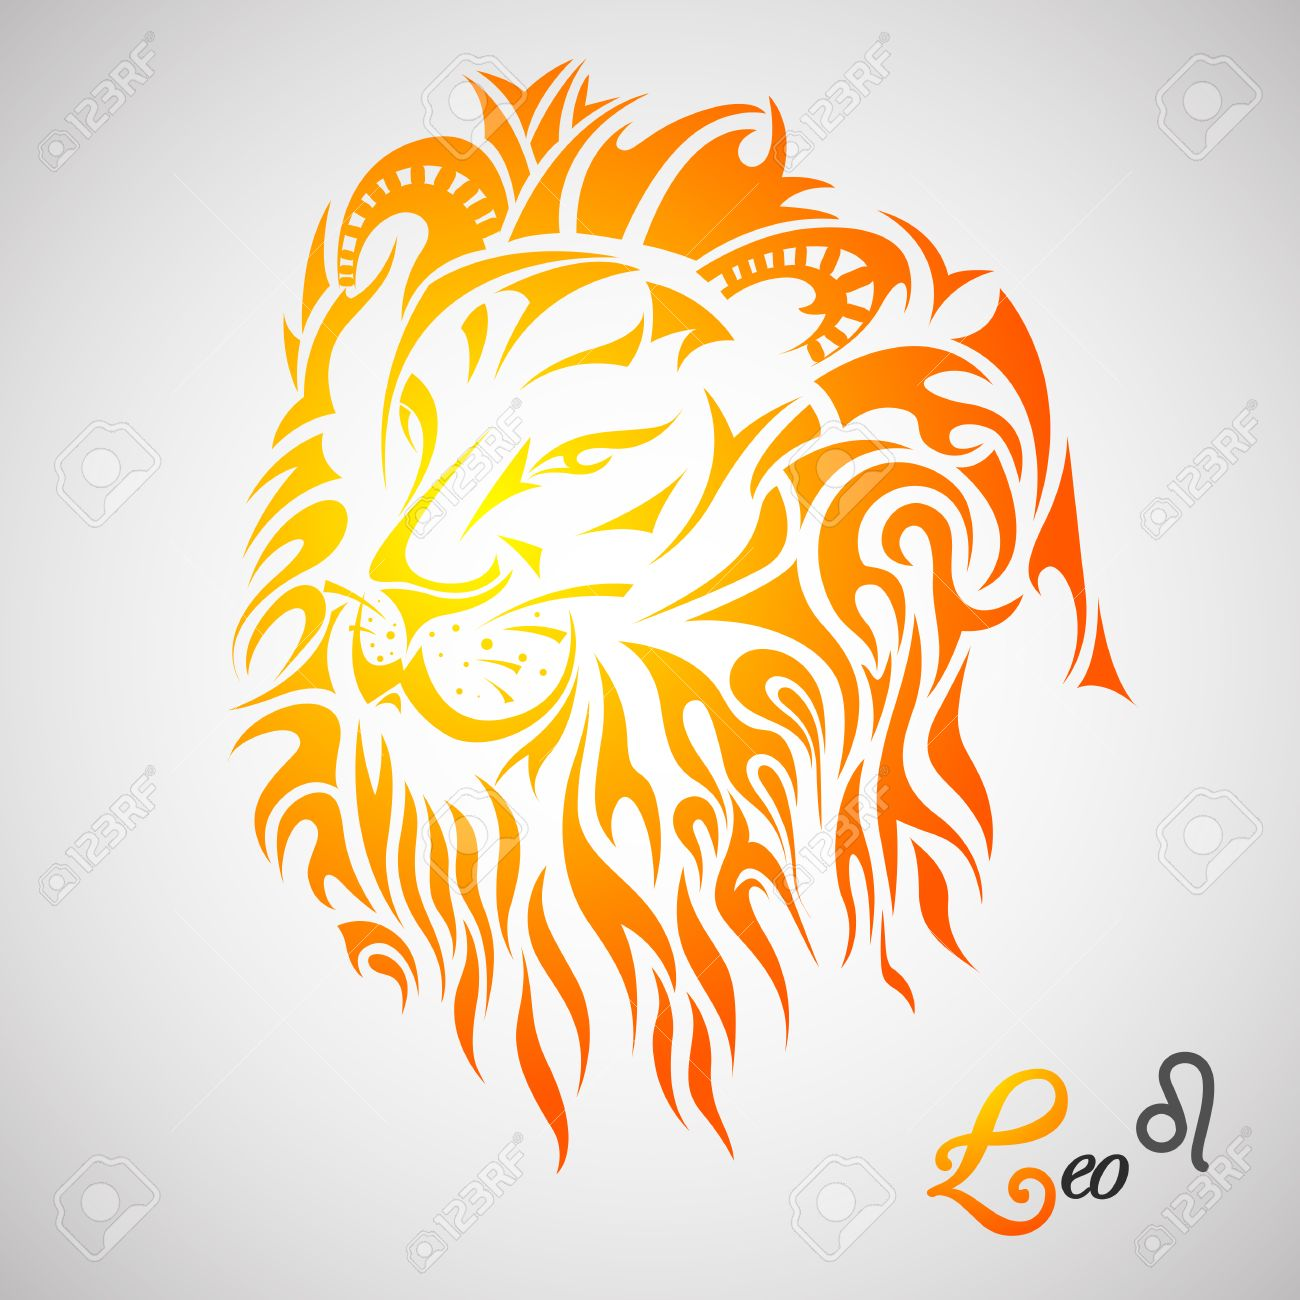 Vector illustration of leo zodiac sign royalty free cliparts vector illustration of leo zodiac sign stock vector 30028484 biocorpaavc Image collections